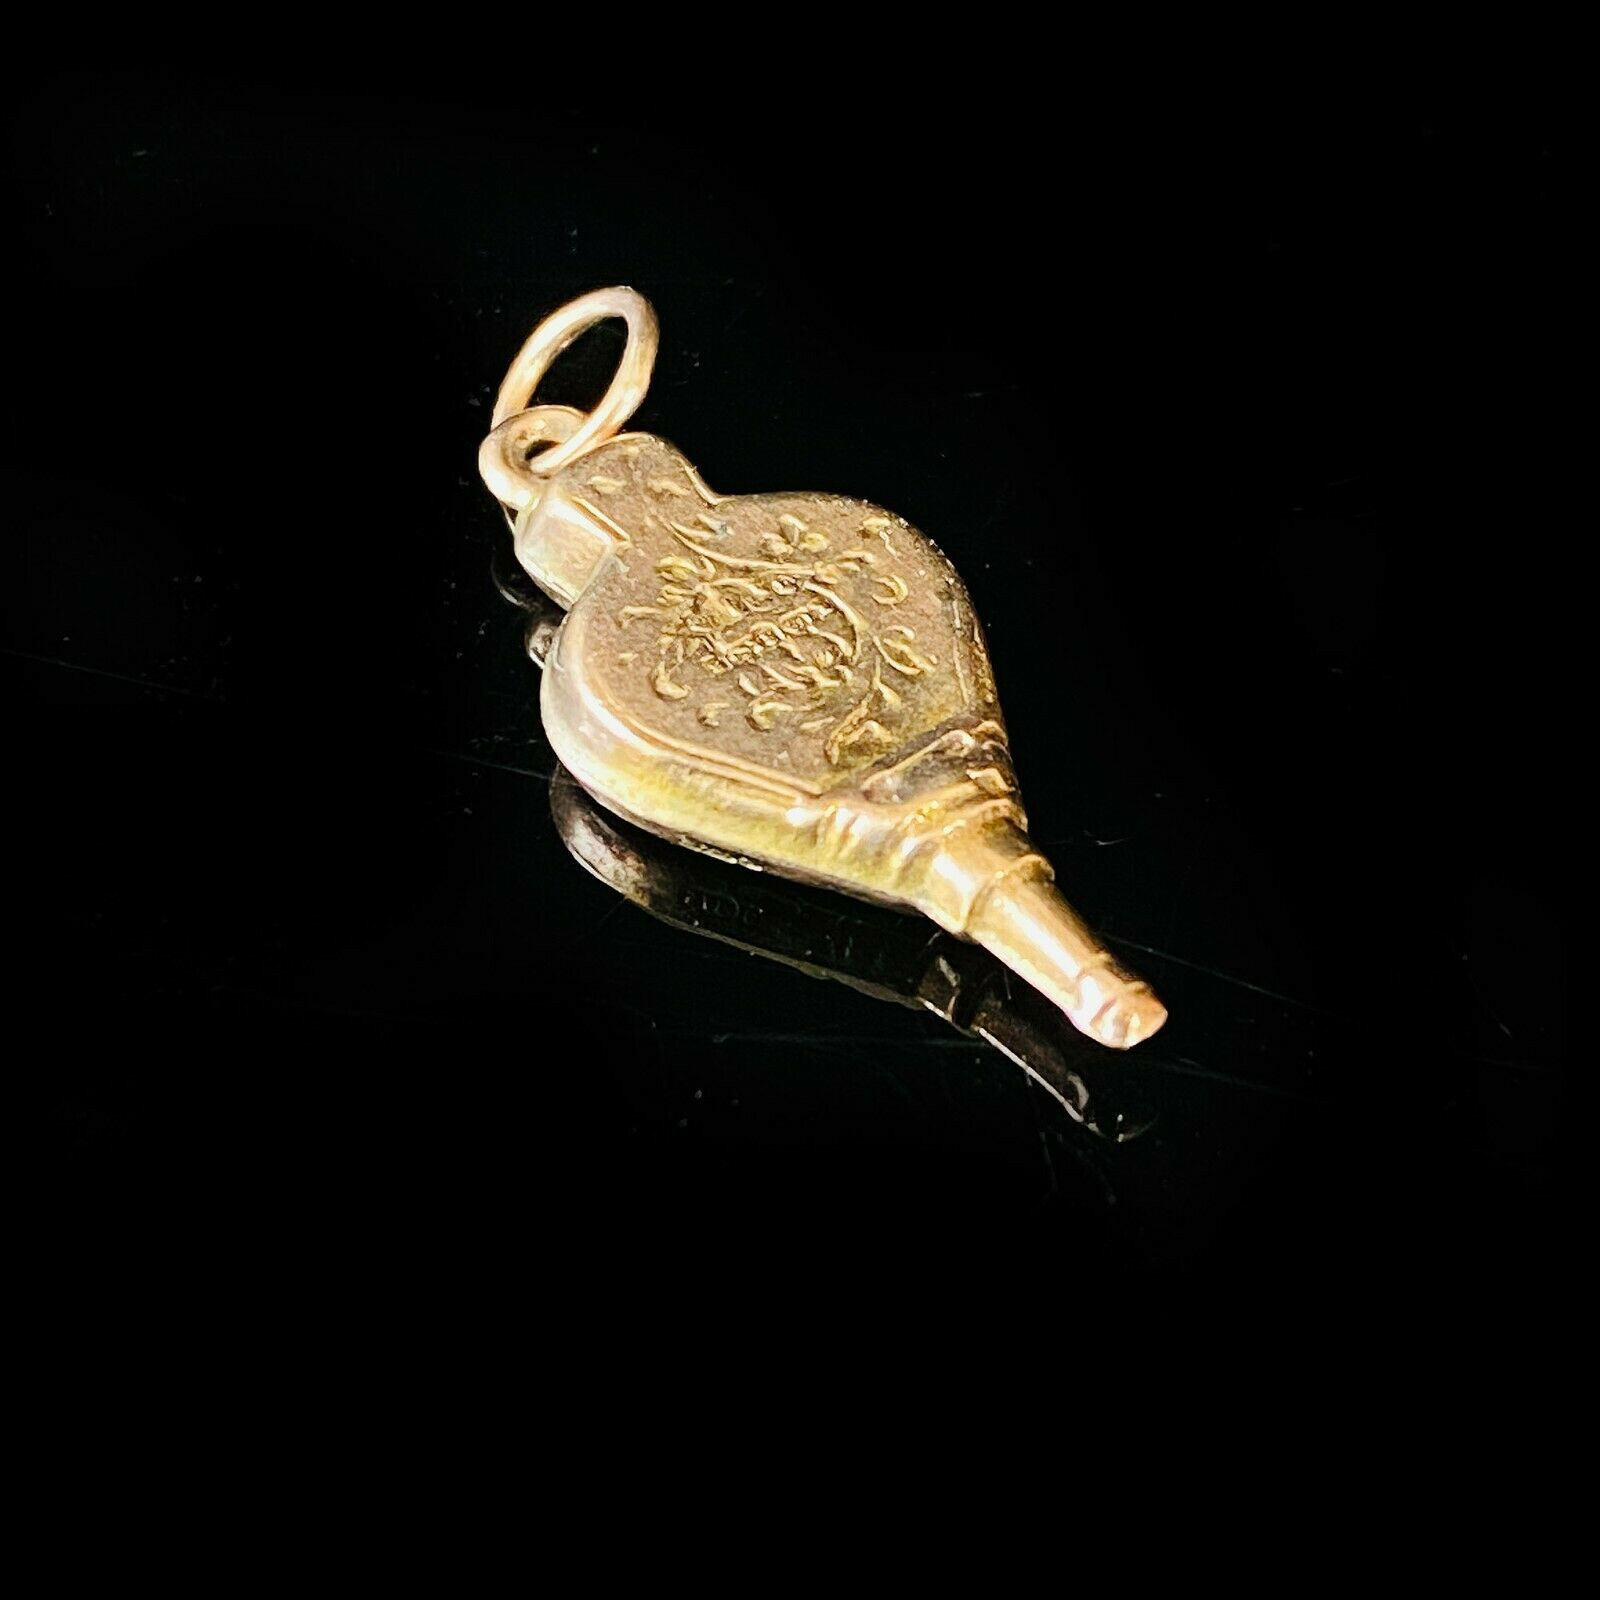 Victorian 9ct/9k, 375 rose gold engraved bellows pendant charm, fully hallmarked